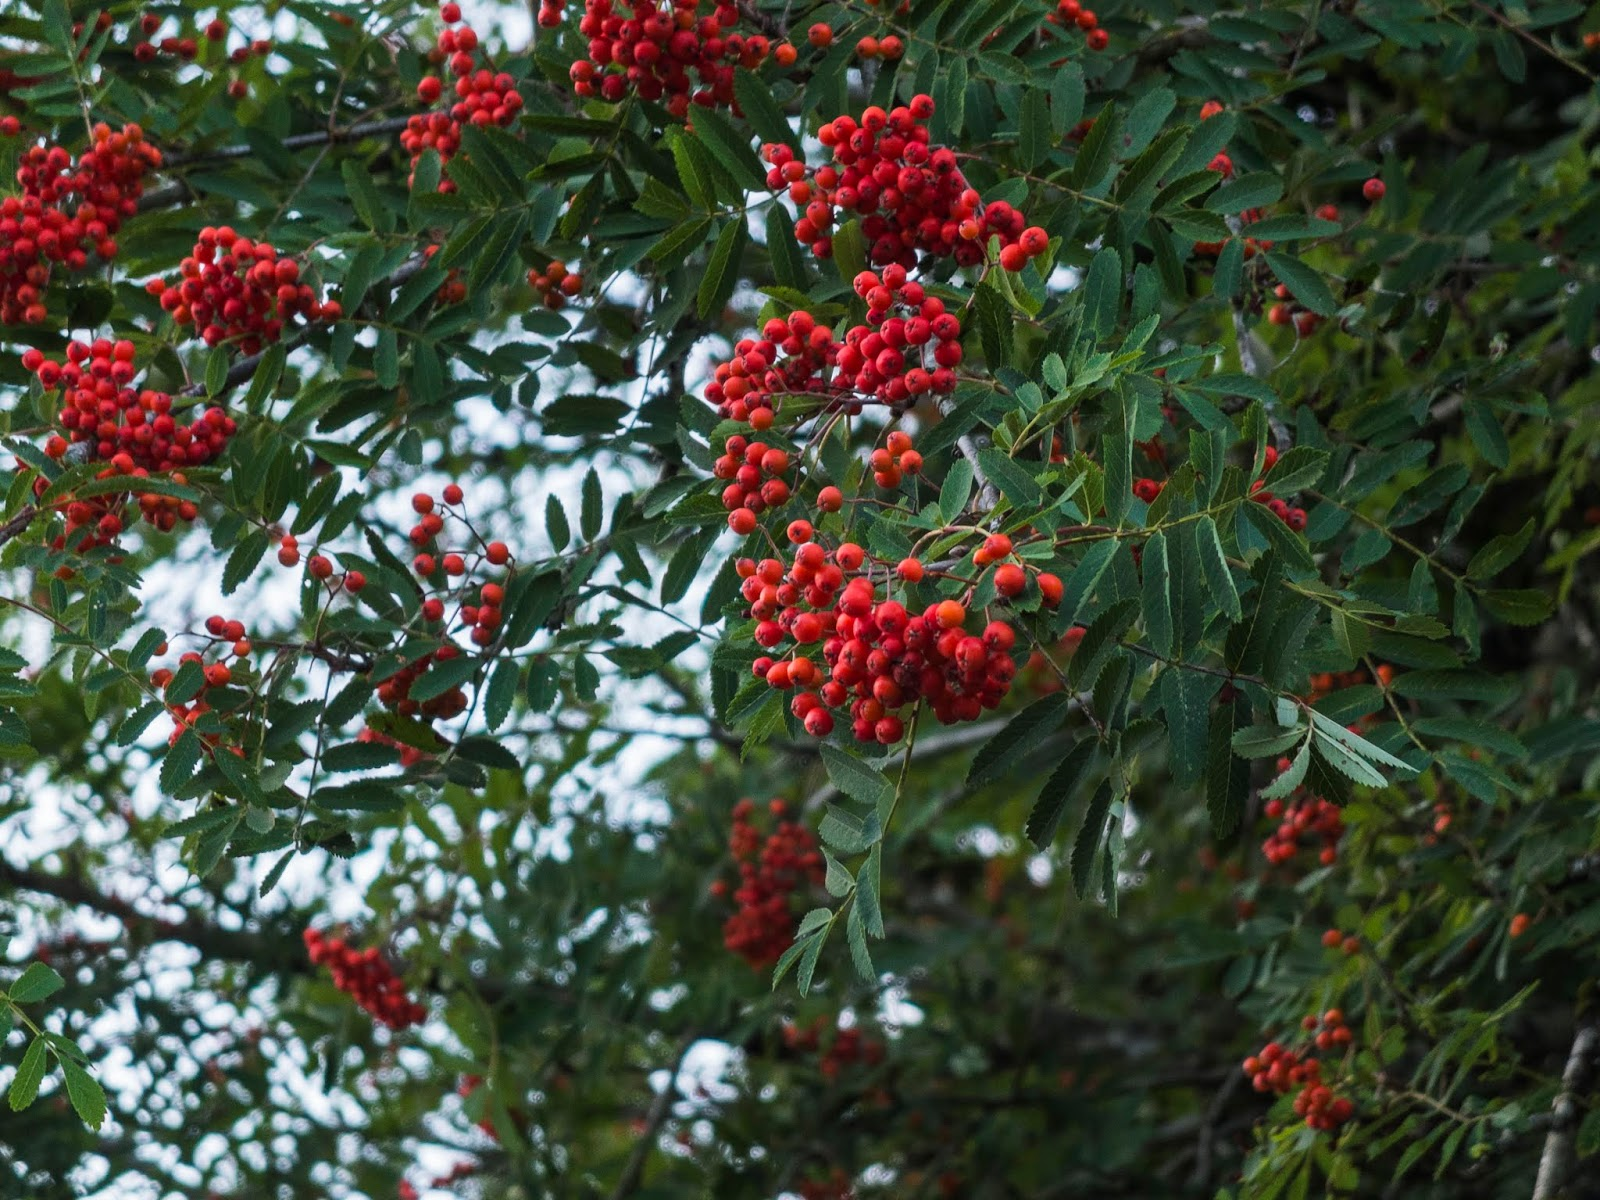 Berries on a Rowan tree pictured underneath the tree.